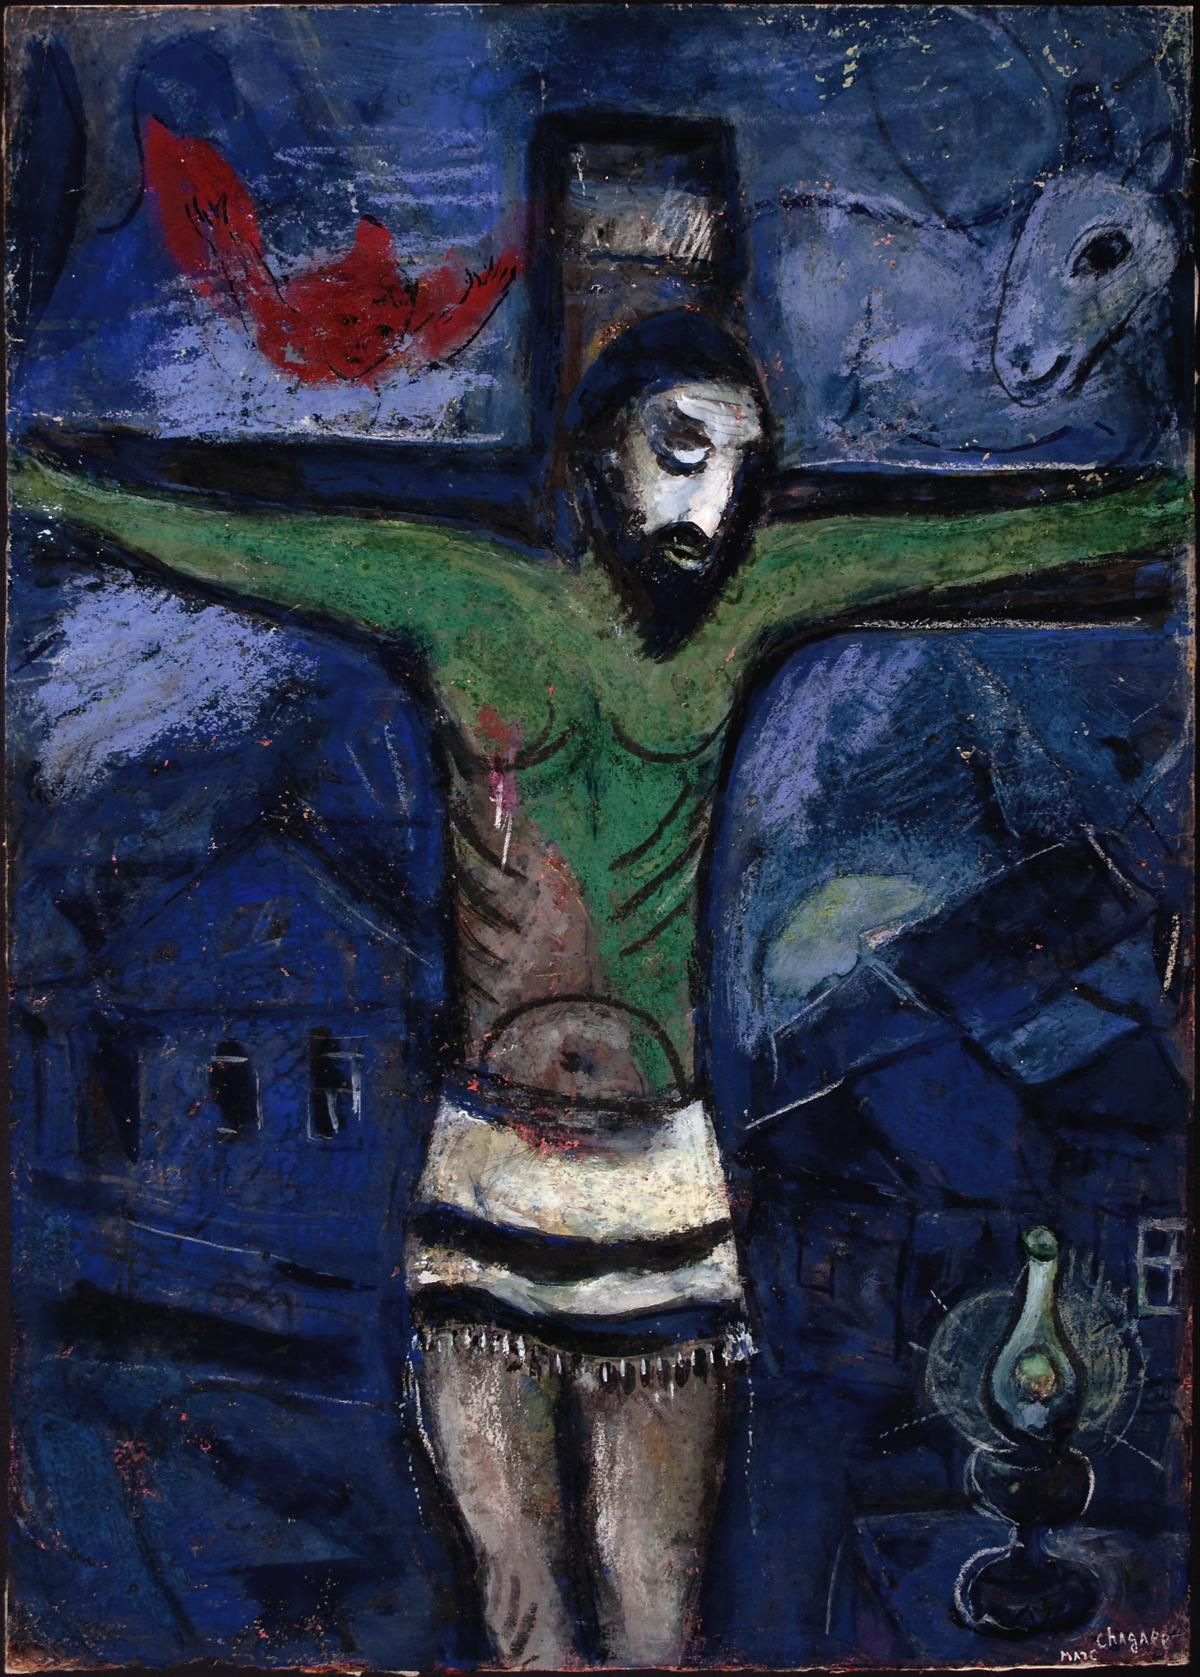 Marc Chagall - 1948, Le Christ dans la nuit / Christ in the Night. Jewish Museum